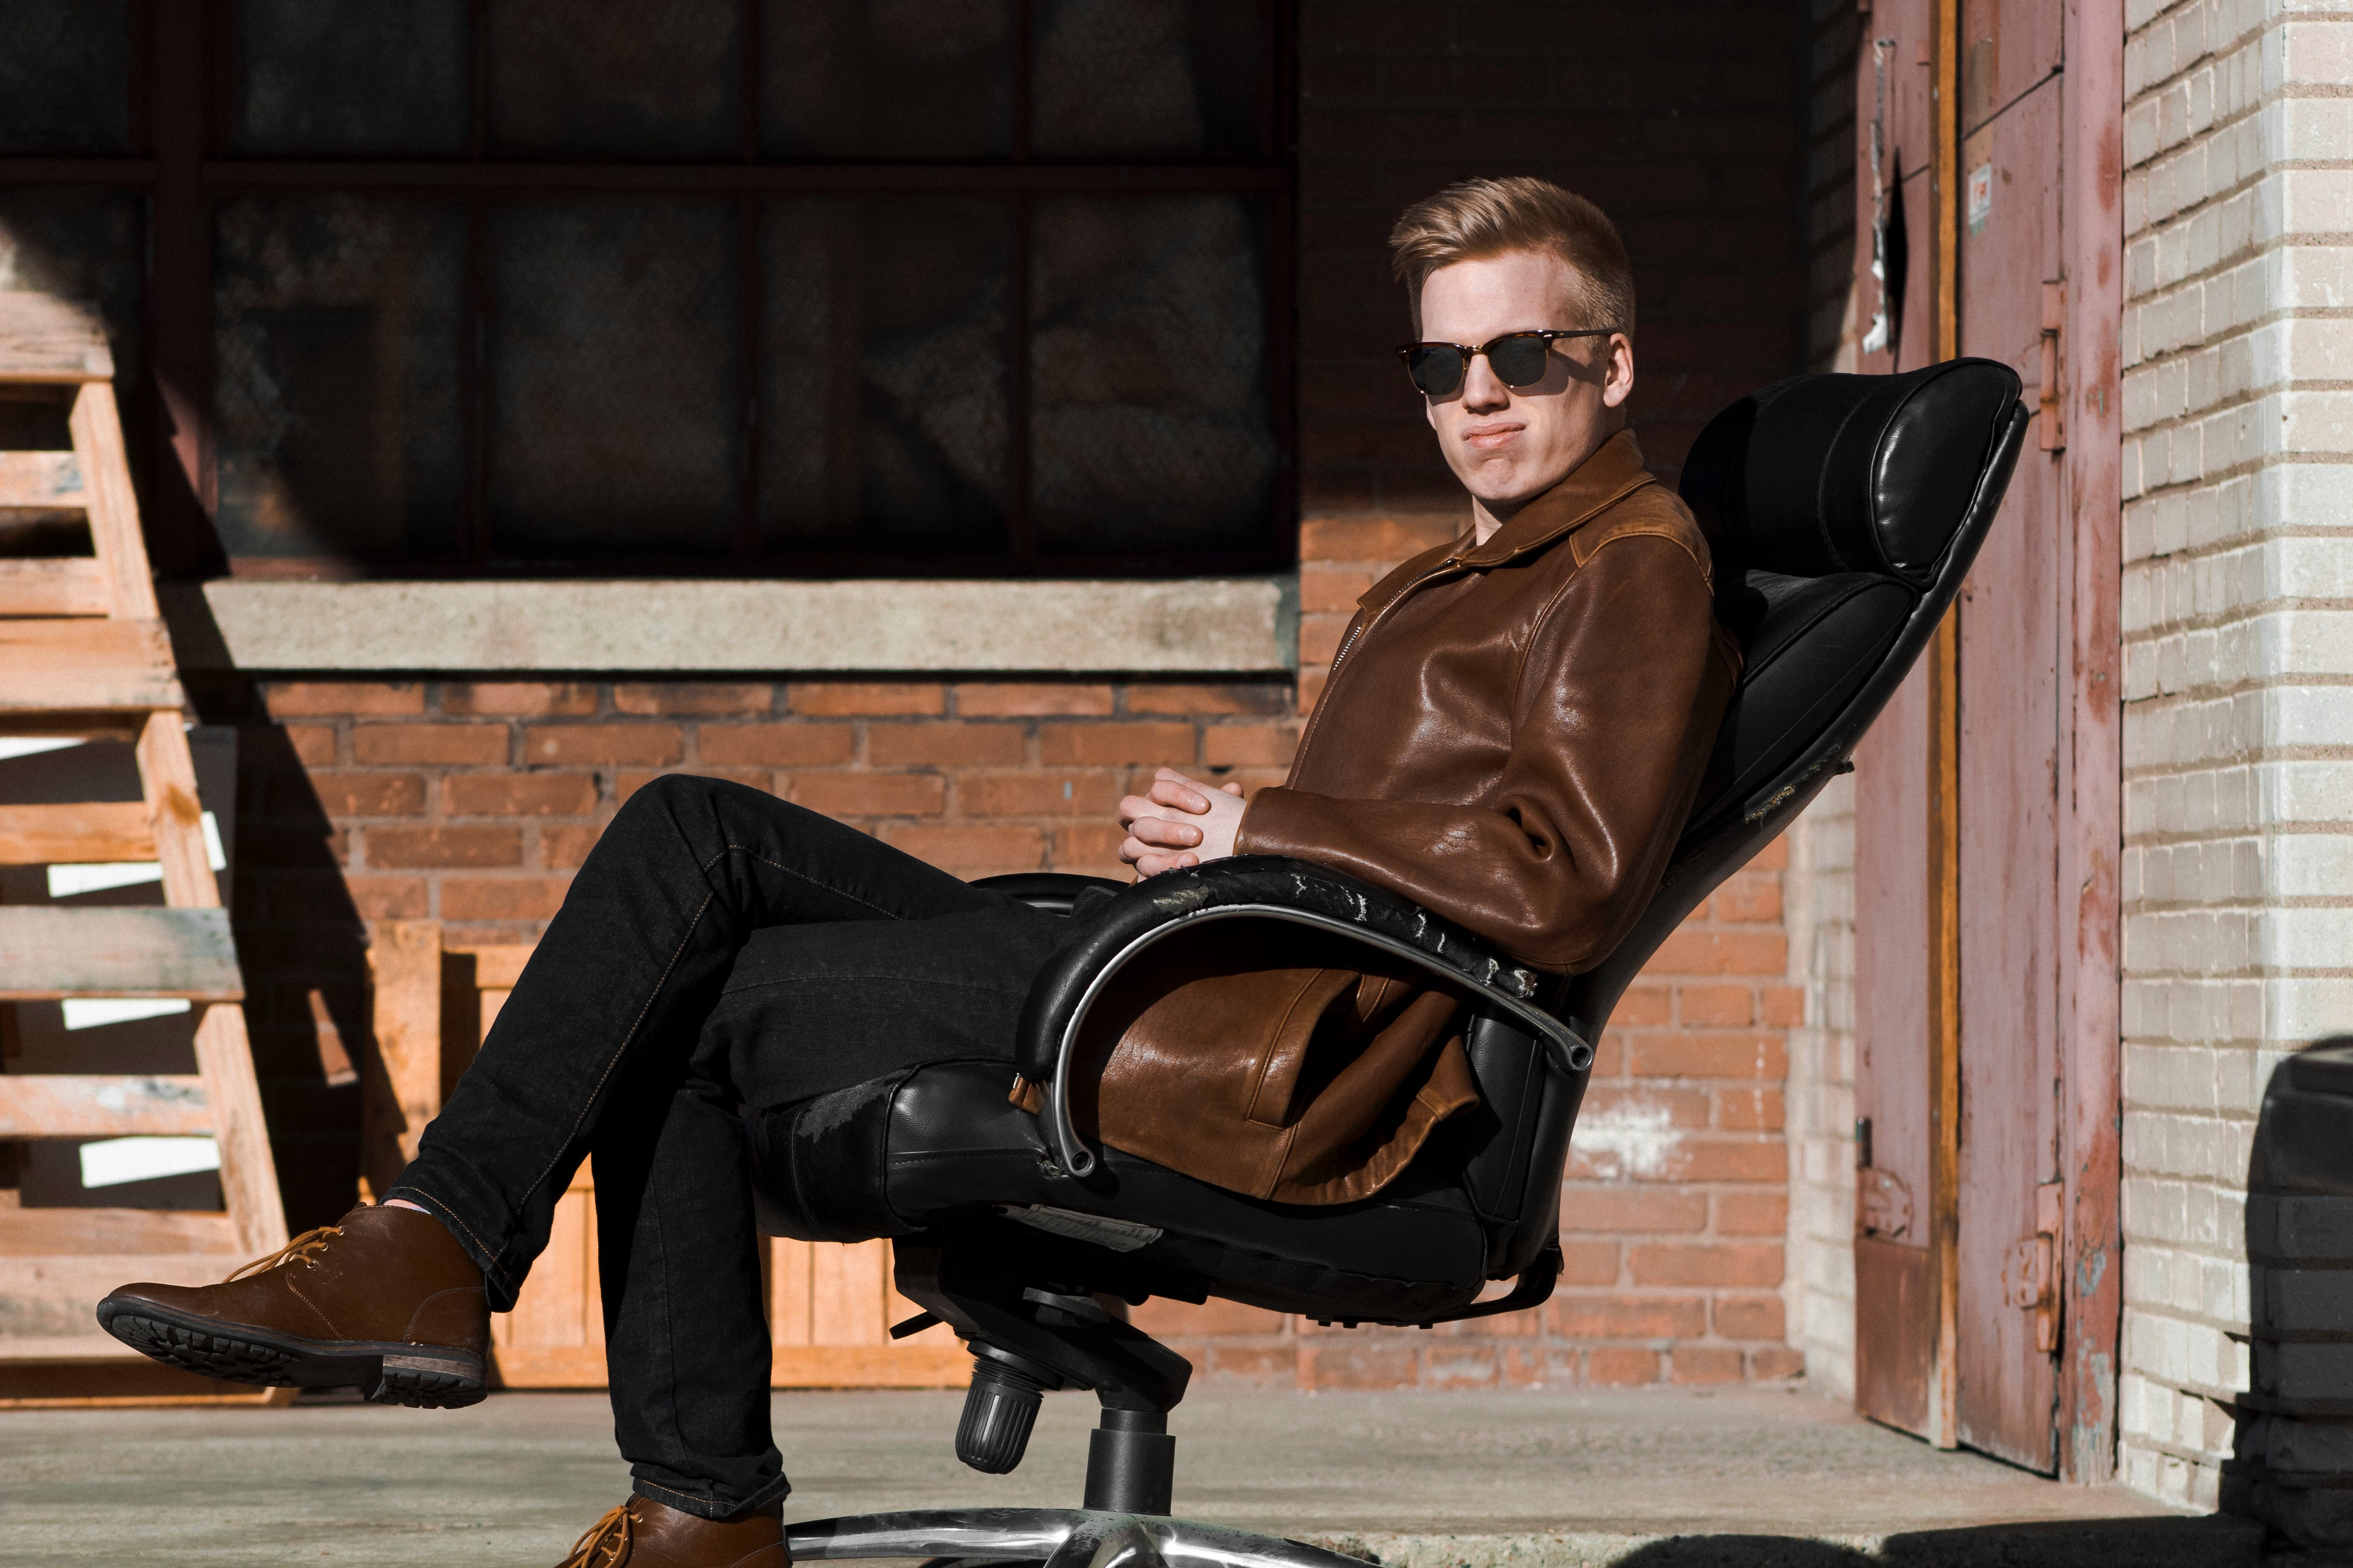 Person wearing brown leather jacket and sunglasses, sitting on black office chair outside